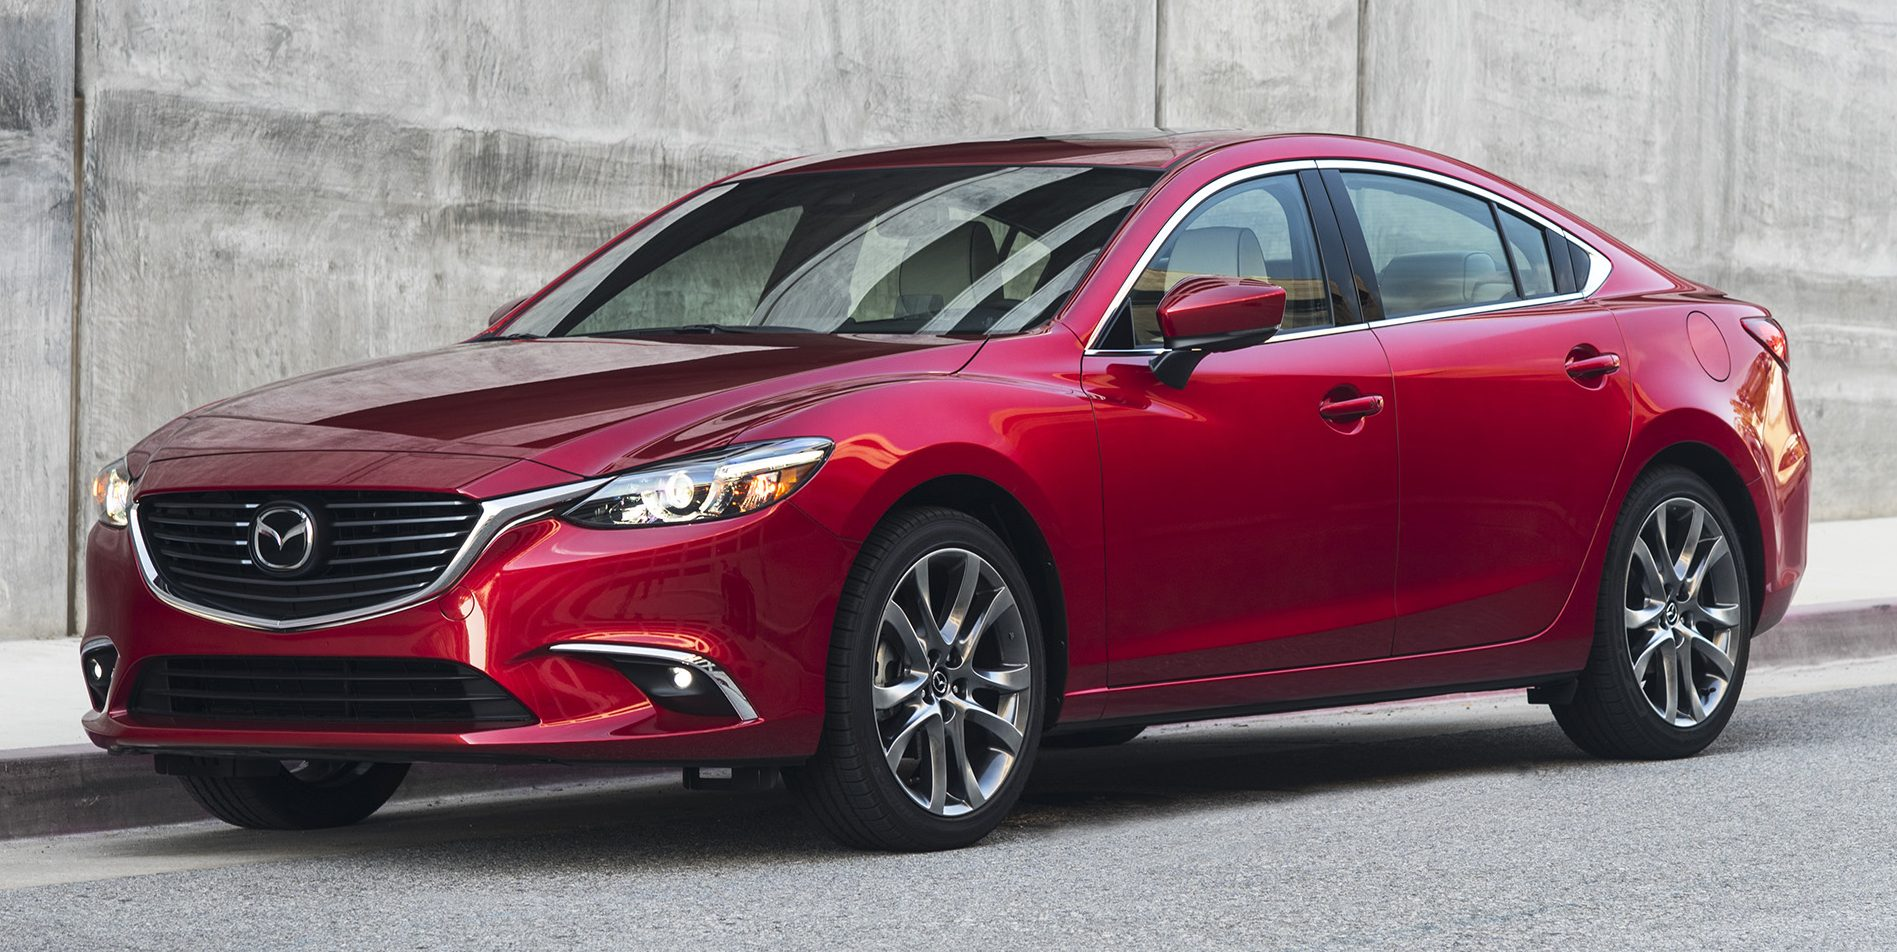 2017 mazda 6 update adds g vectoring control tech. Black Bedroom Furniture Sets. Home Design Ideas